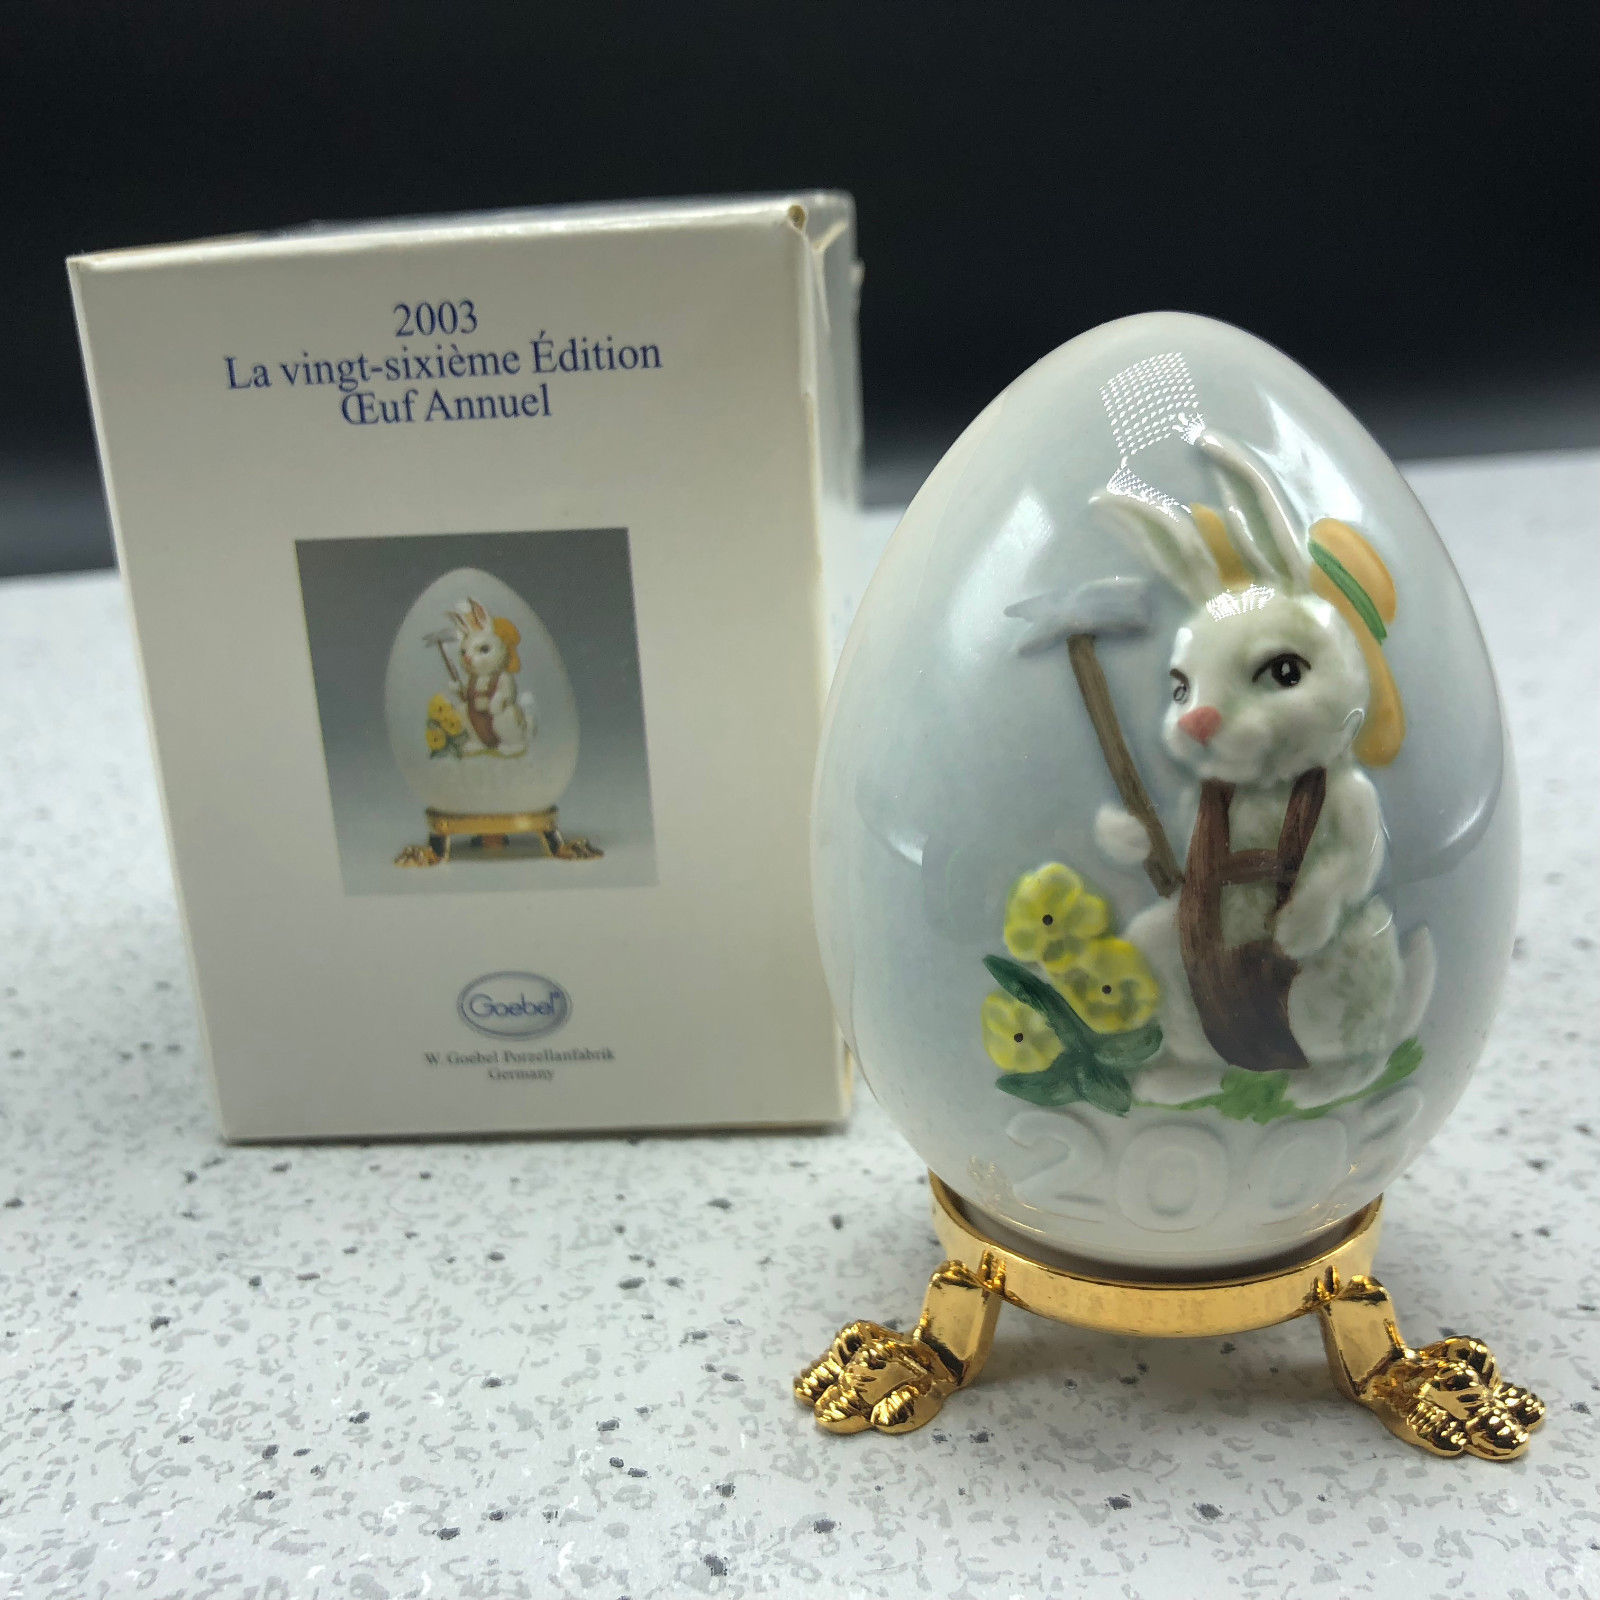 2003 GOEBEL ANNUAL EASTER EGG West Germany 26th edition figurine bunny rabbit UK